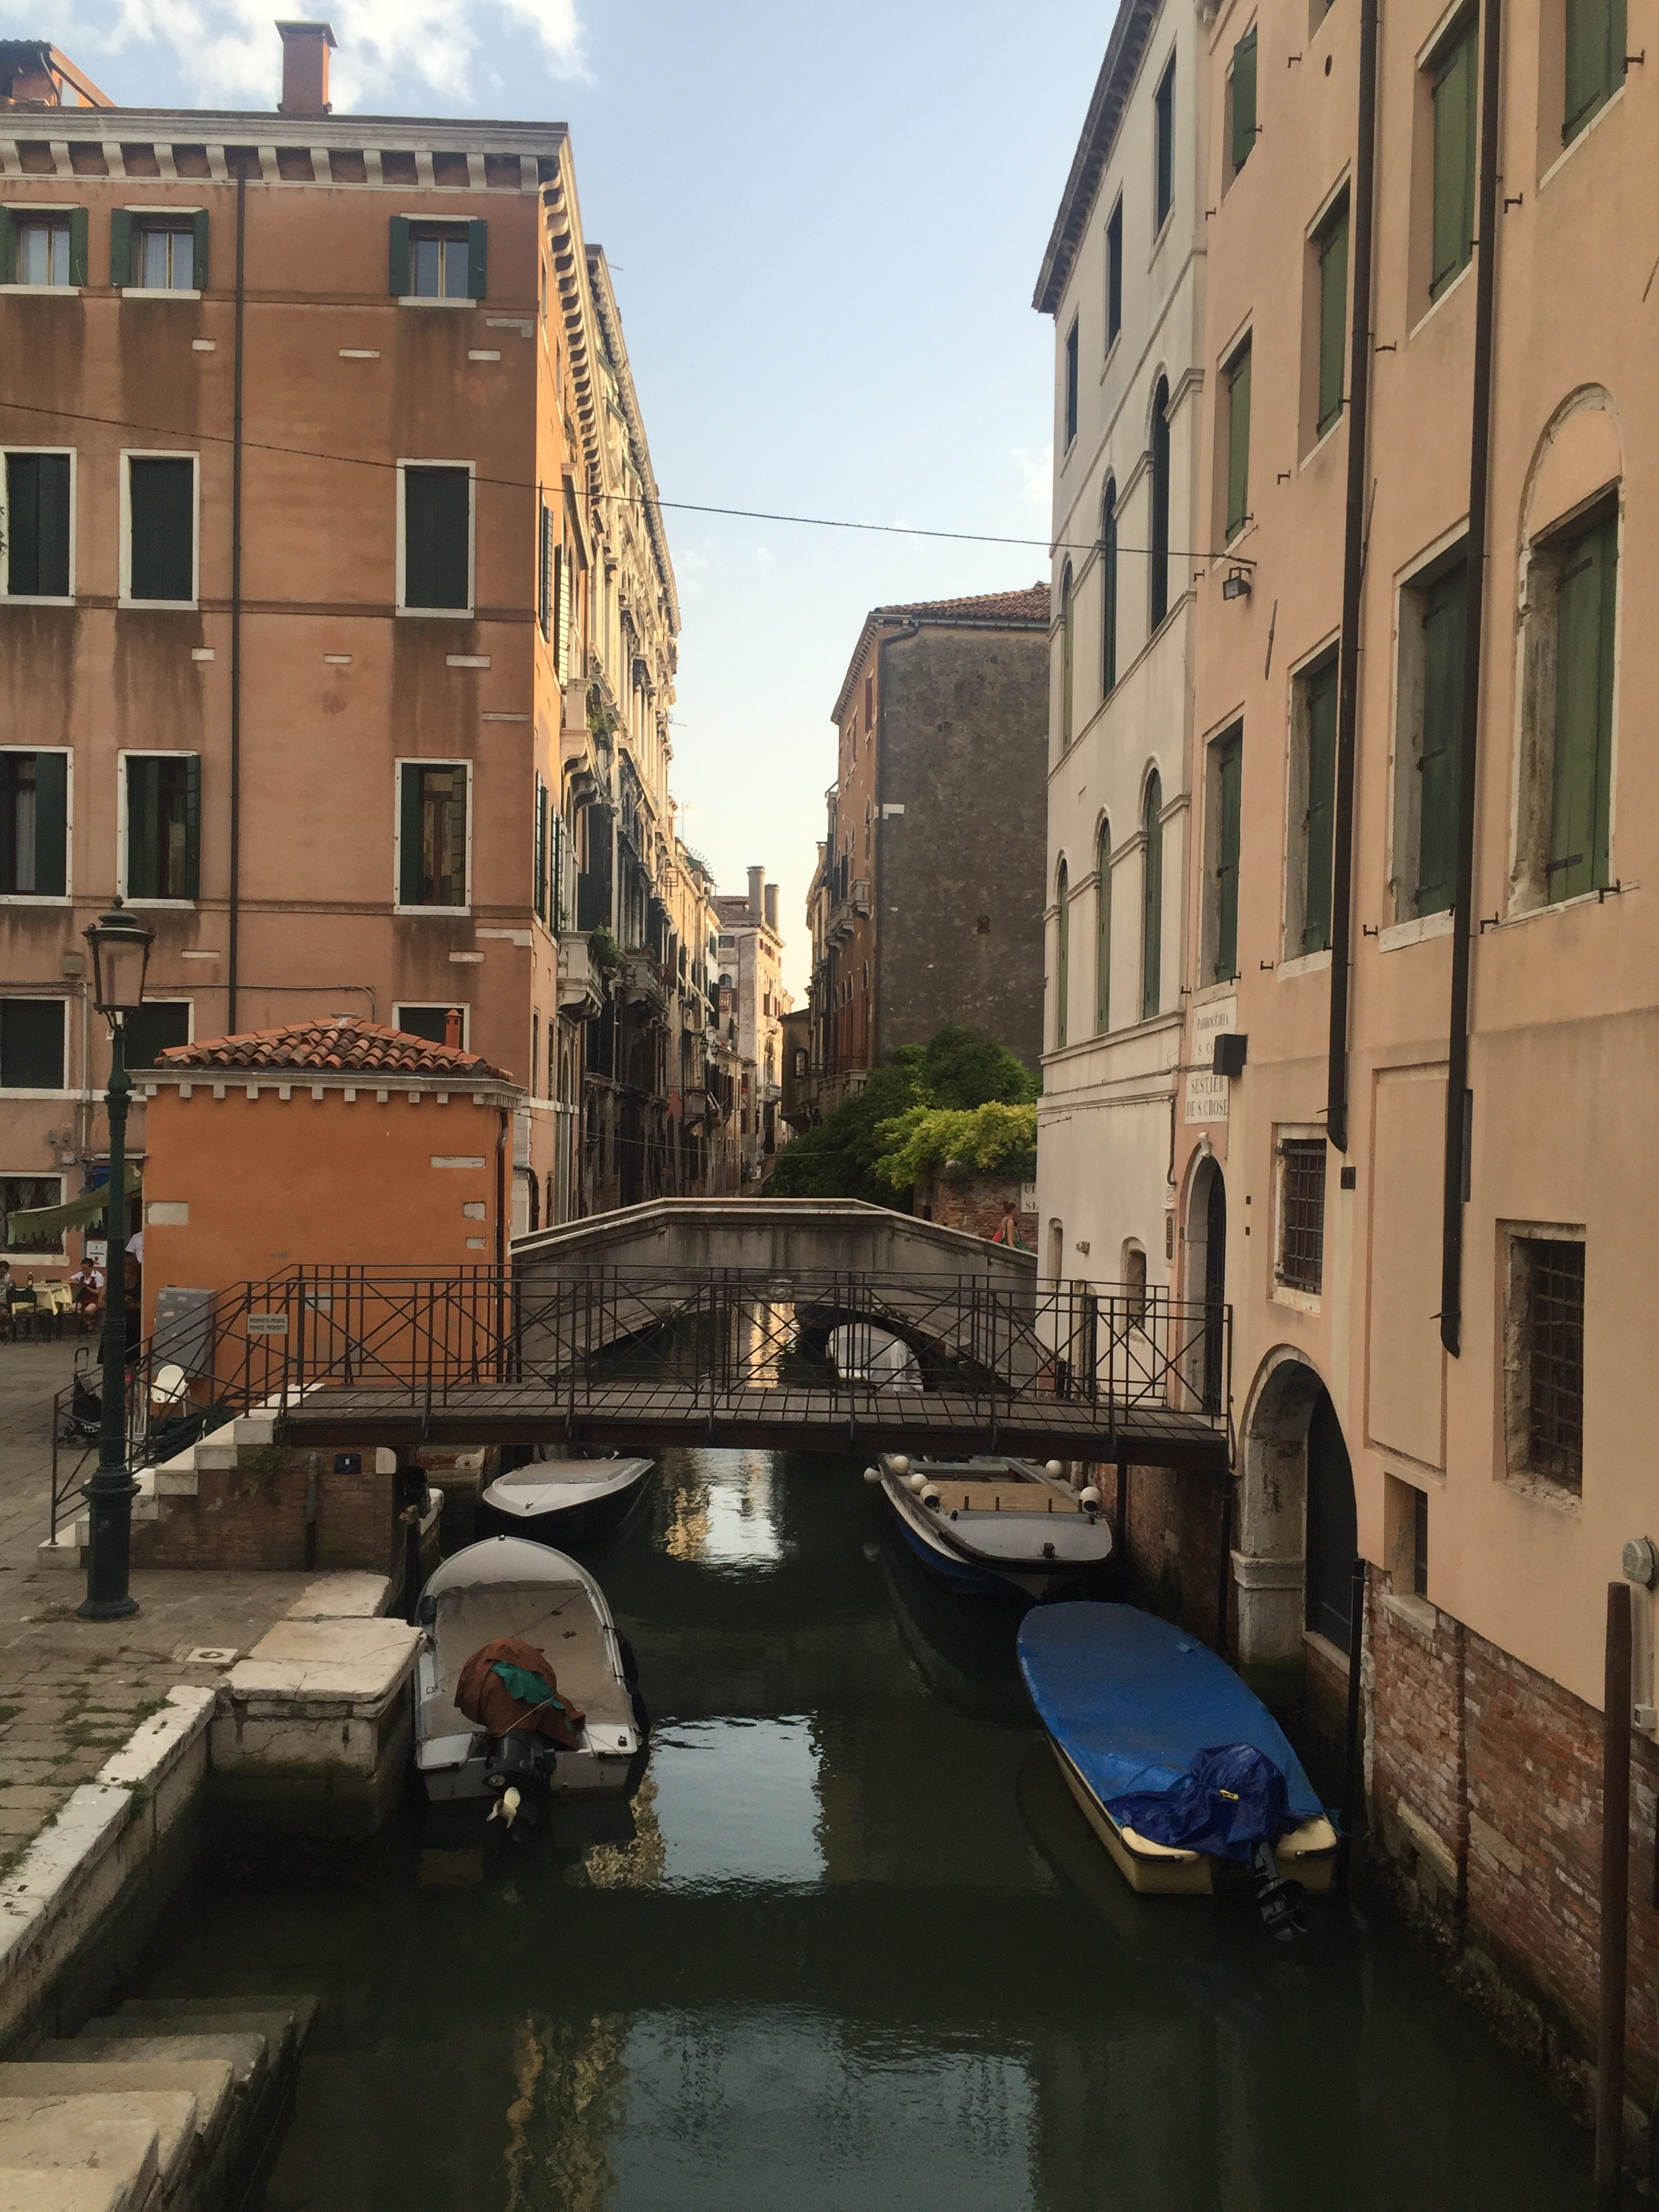 Canals in Venice - travel guide